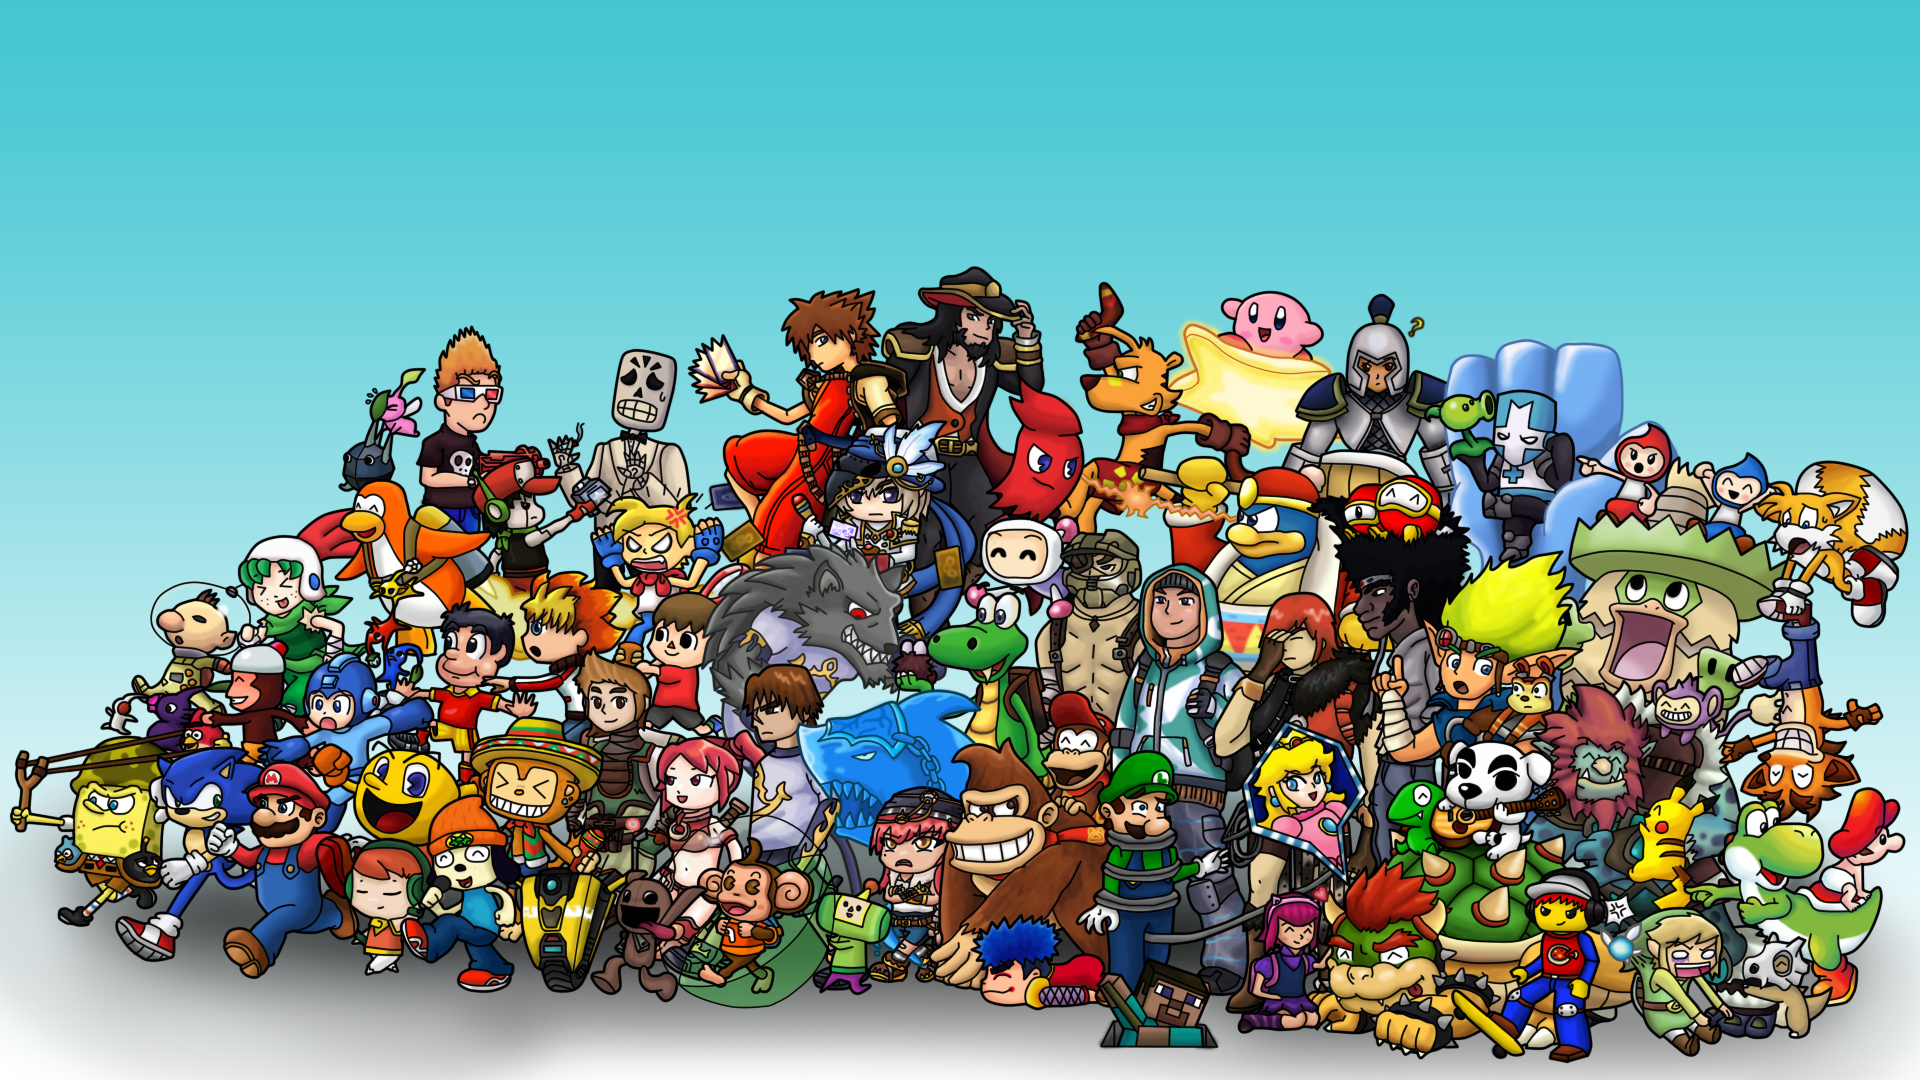 video game wallpaper dump retro gaming wallpapers full hd excitelt video games awesome wallpapers 1920x1080